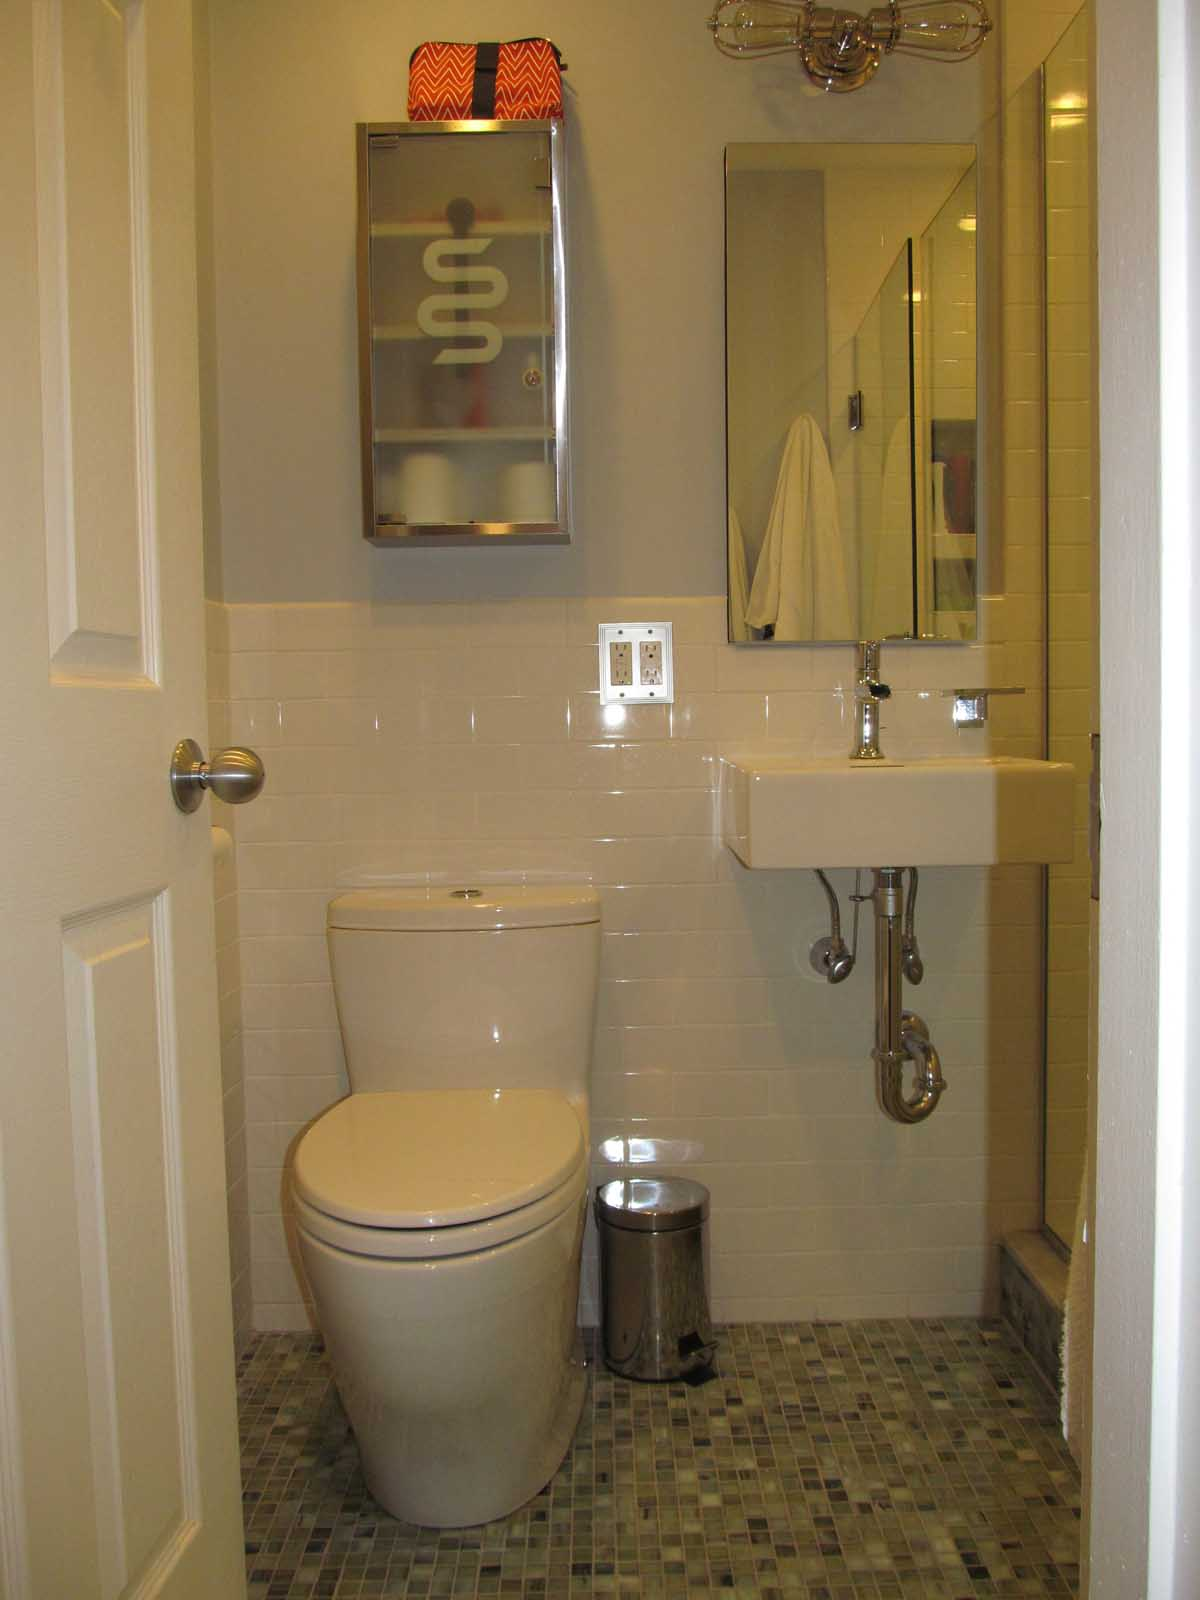 Bathroom Remodel - Appleton St. - Boston MA